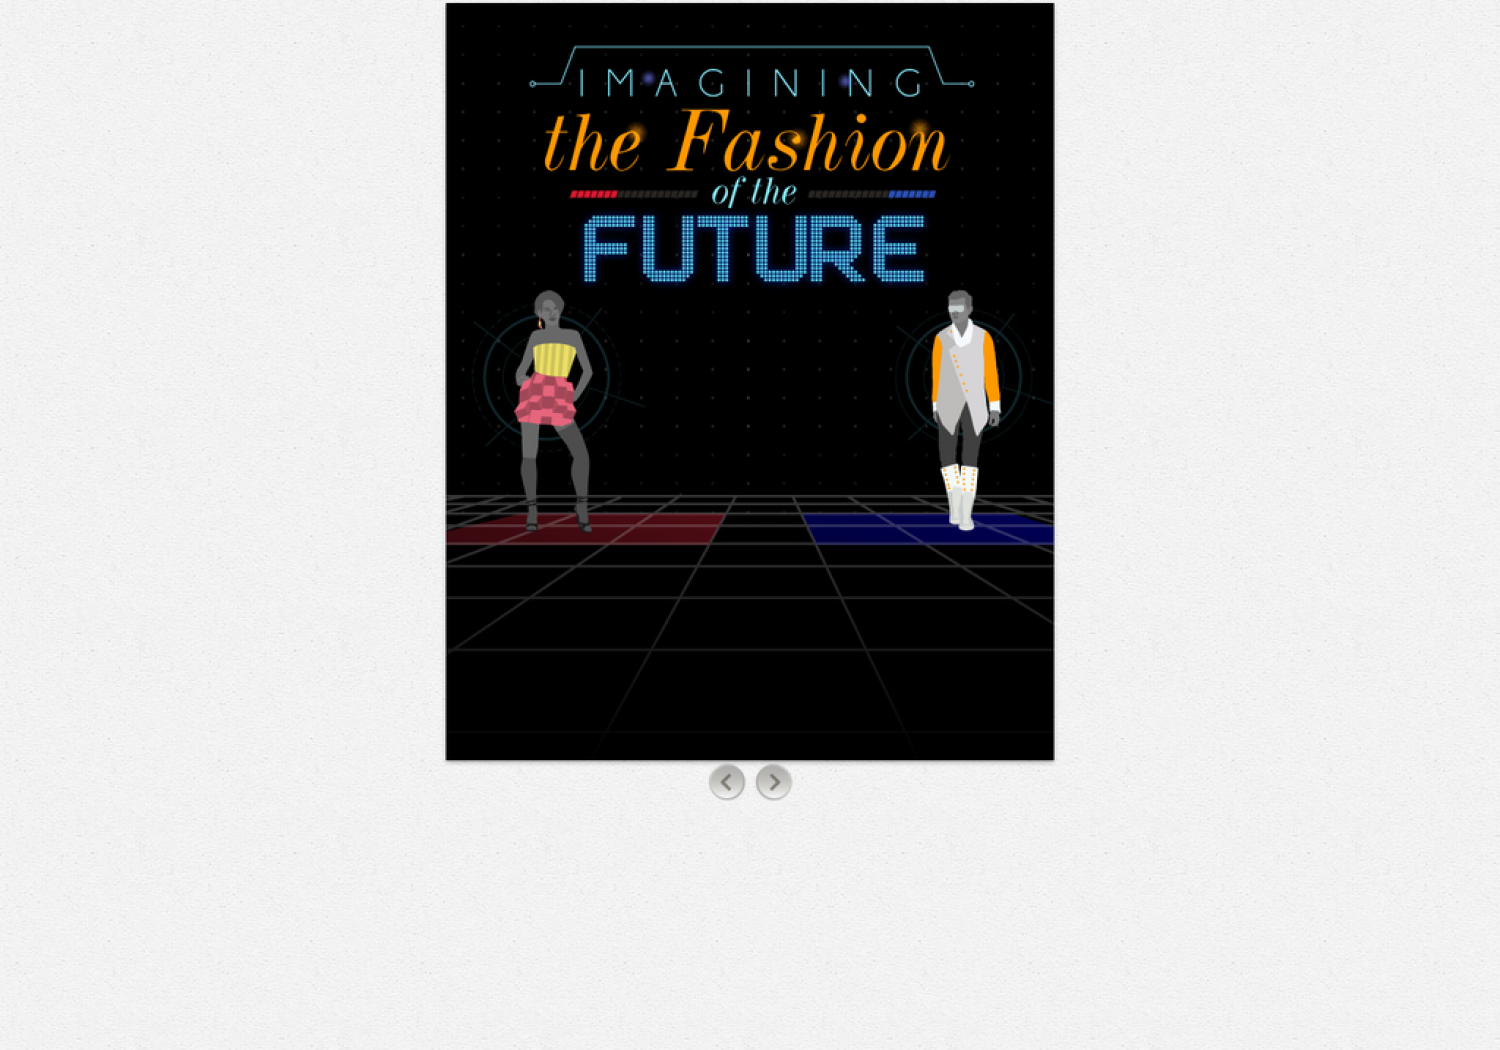 Imagining the Fashion of the Future Infographic